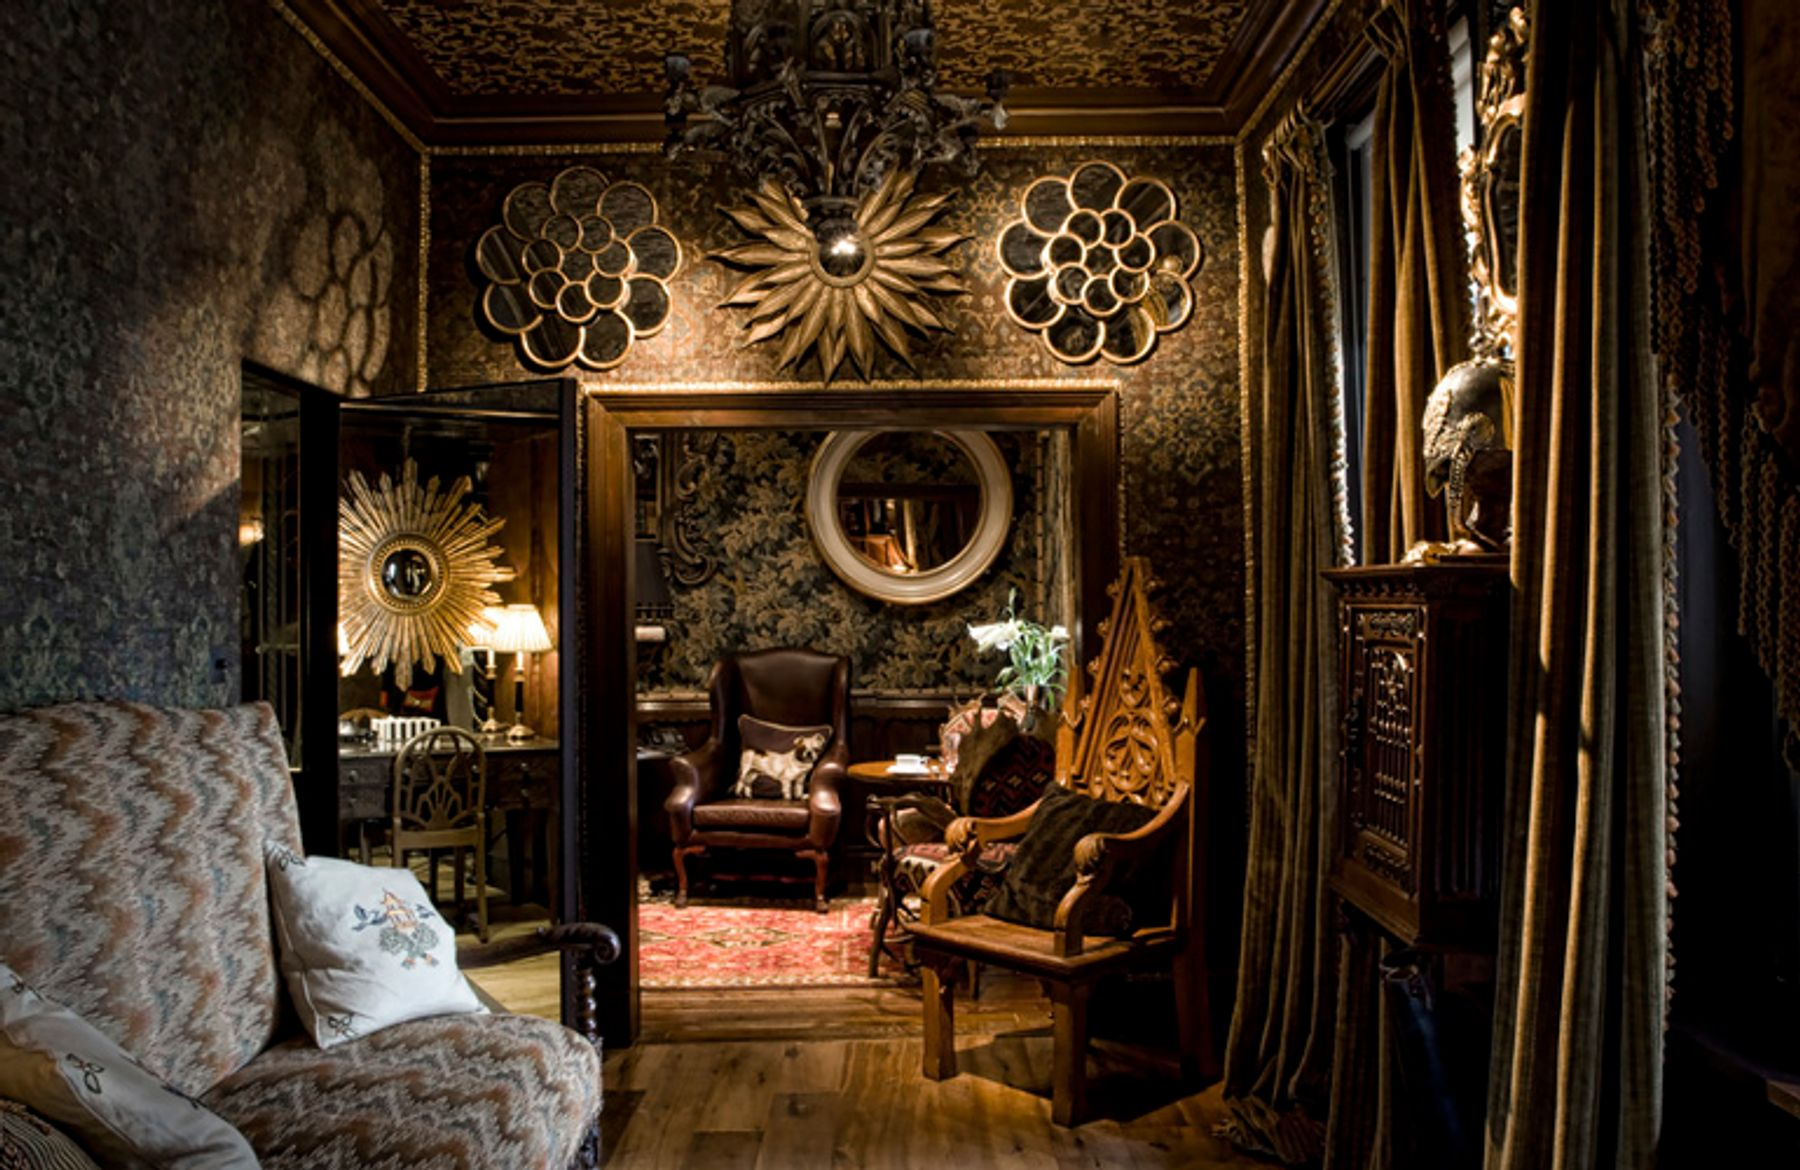 Edinburgh's sumptuous Witchery by the Castle is one of the UK's most unusual hotels